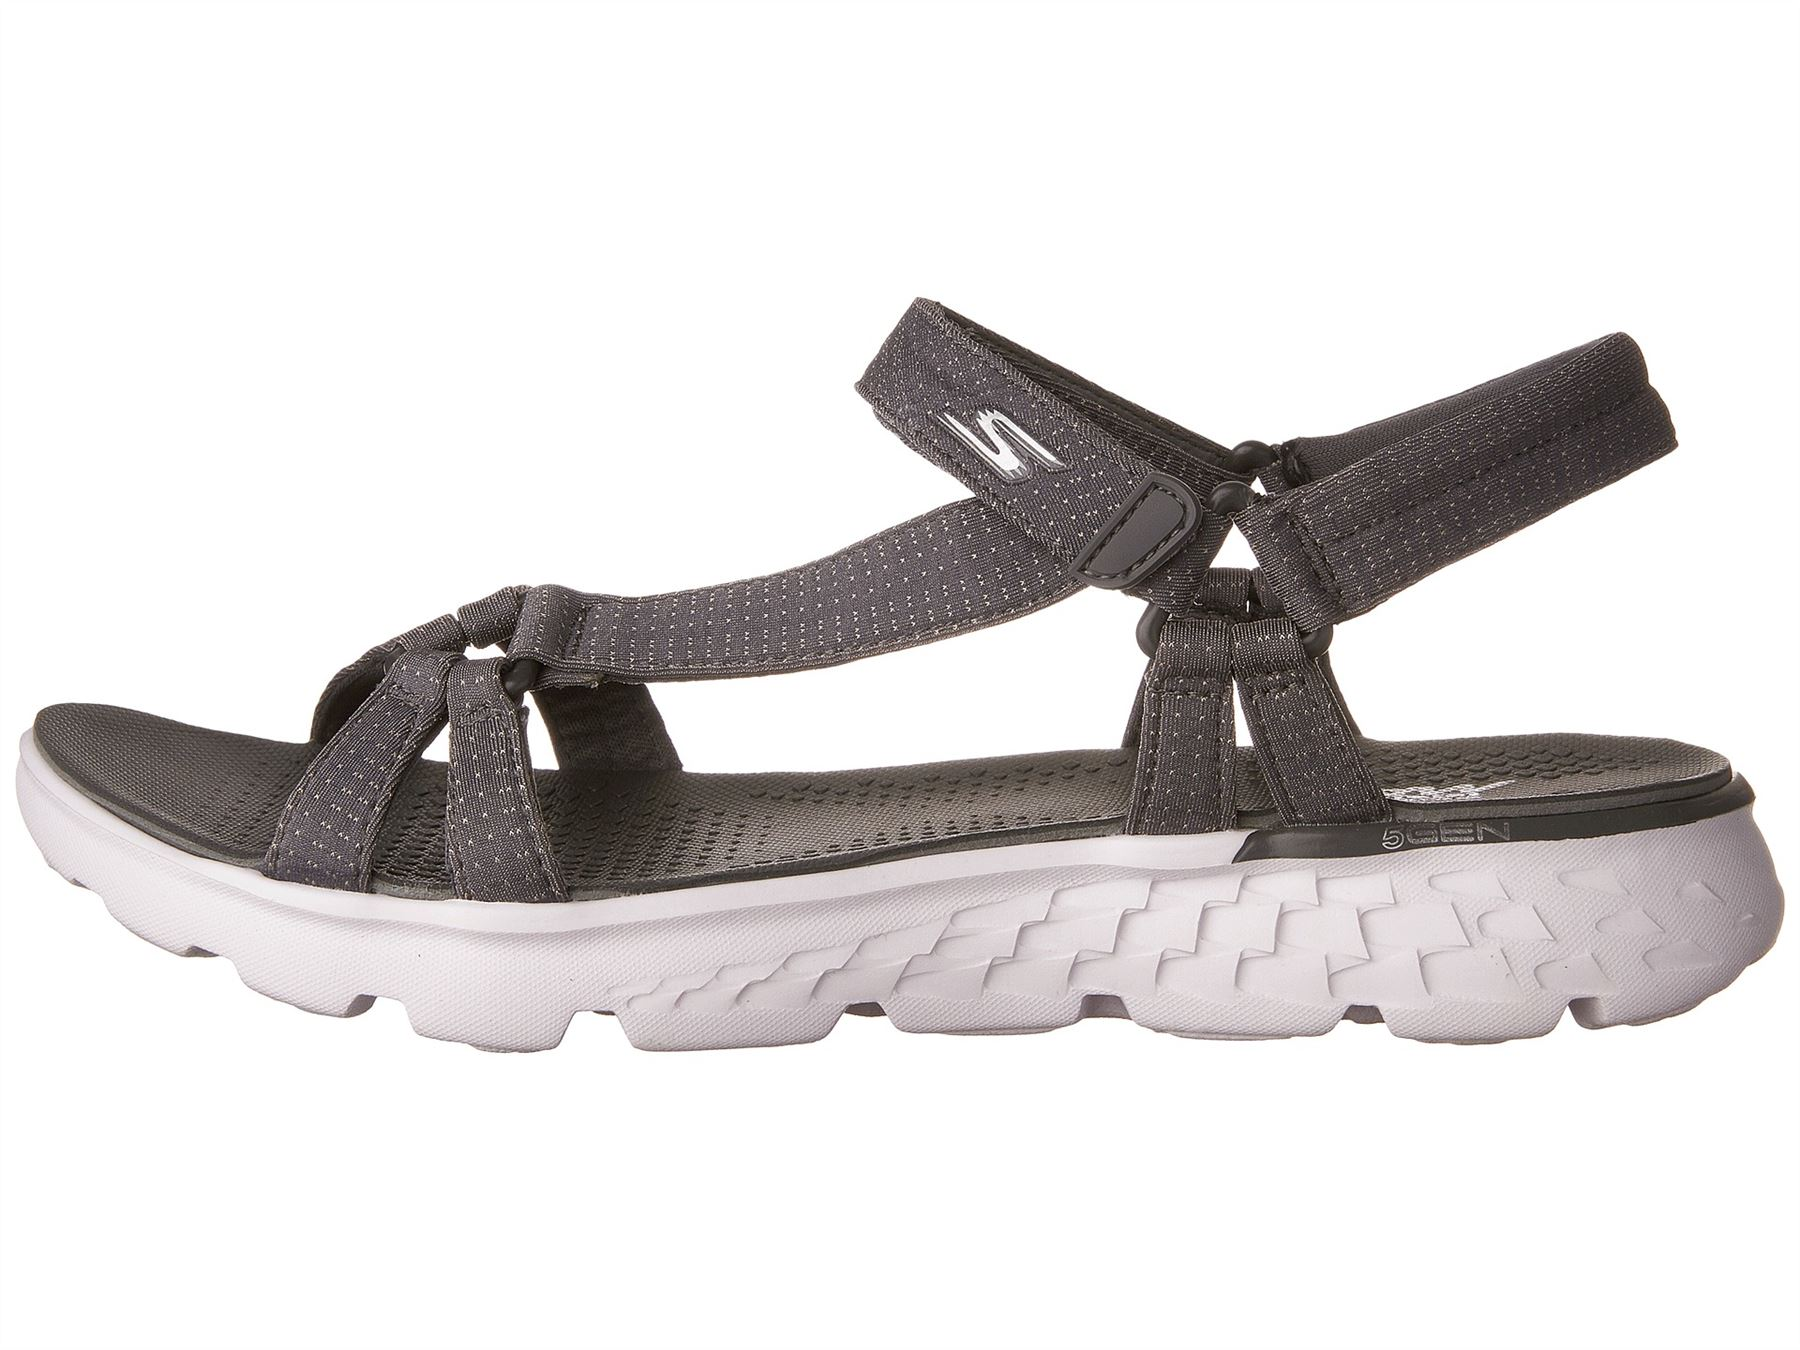 Skechers Performance Women S On The Go 400 Radiance Sandals